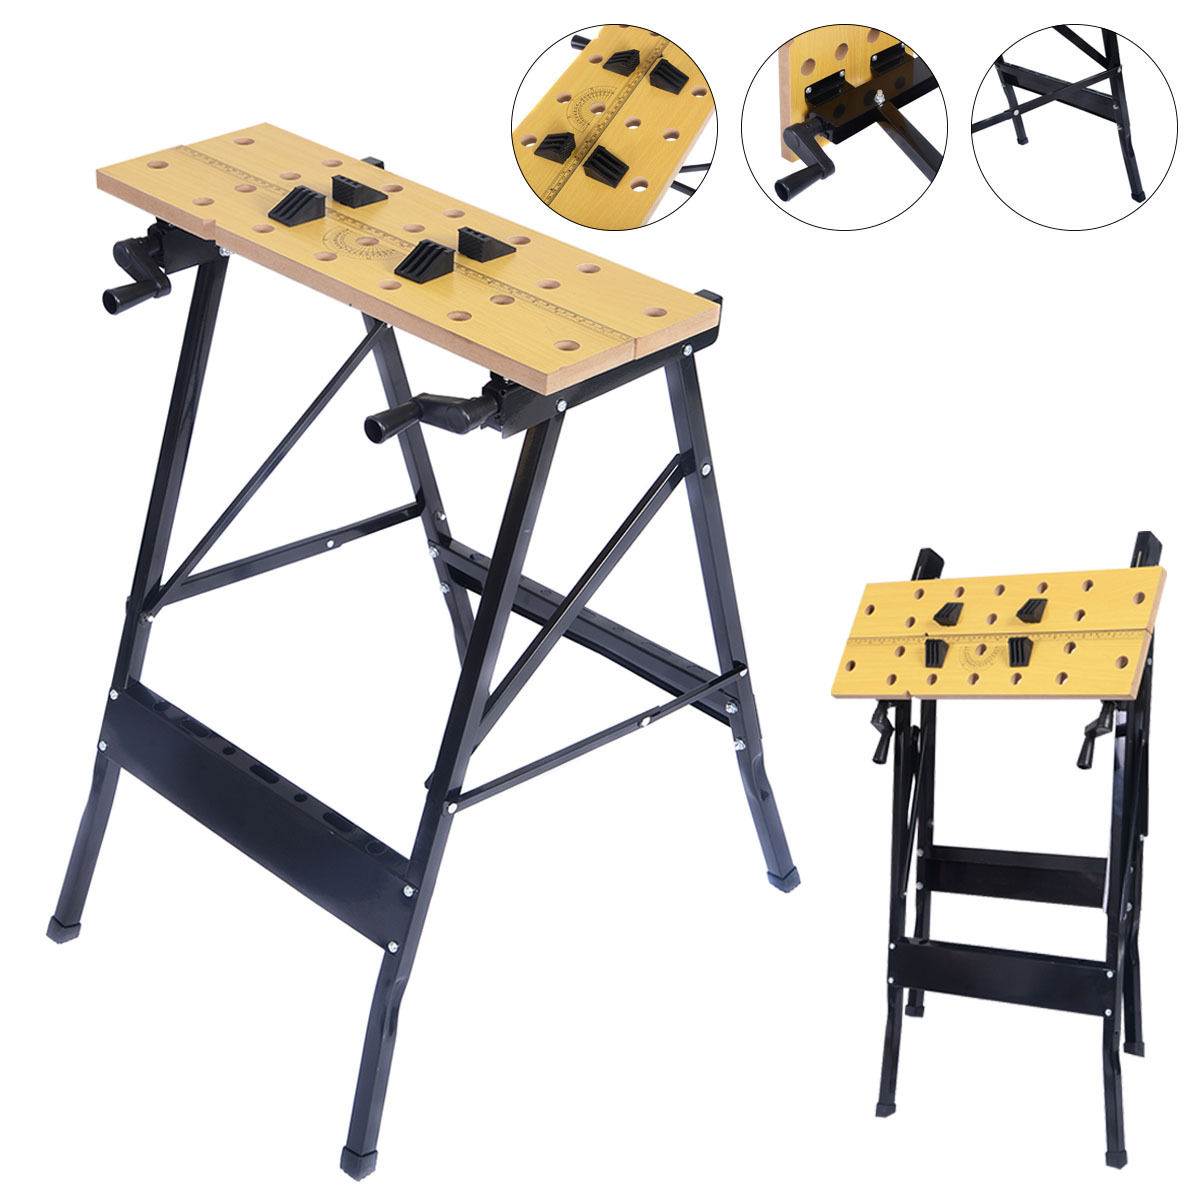 Costway Folding Work Bench Table Tool Garage Repair Workshop by Costway